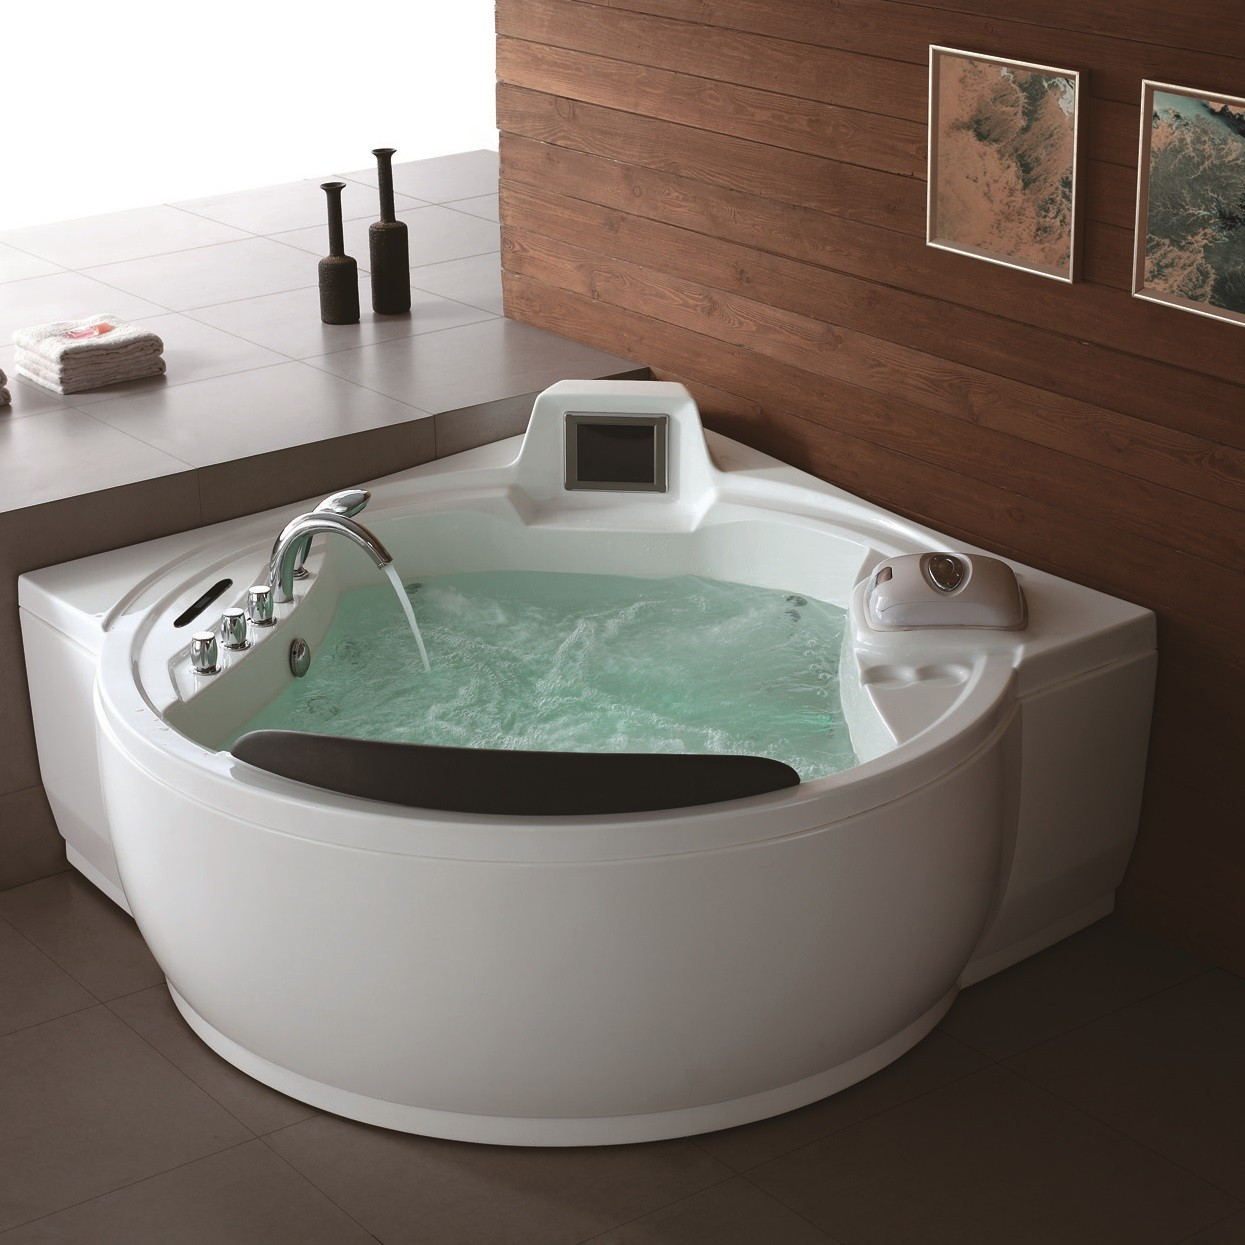 Whirlpool Bathtubs | Luxury Bathroom Corner Whirlpool Bath Tubs - USA